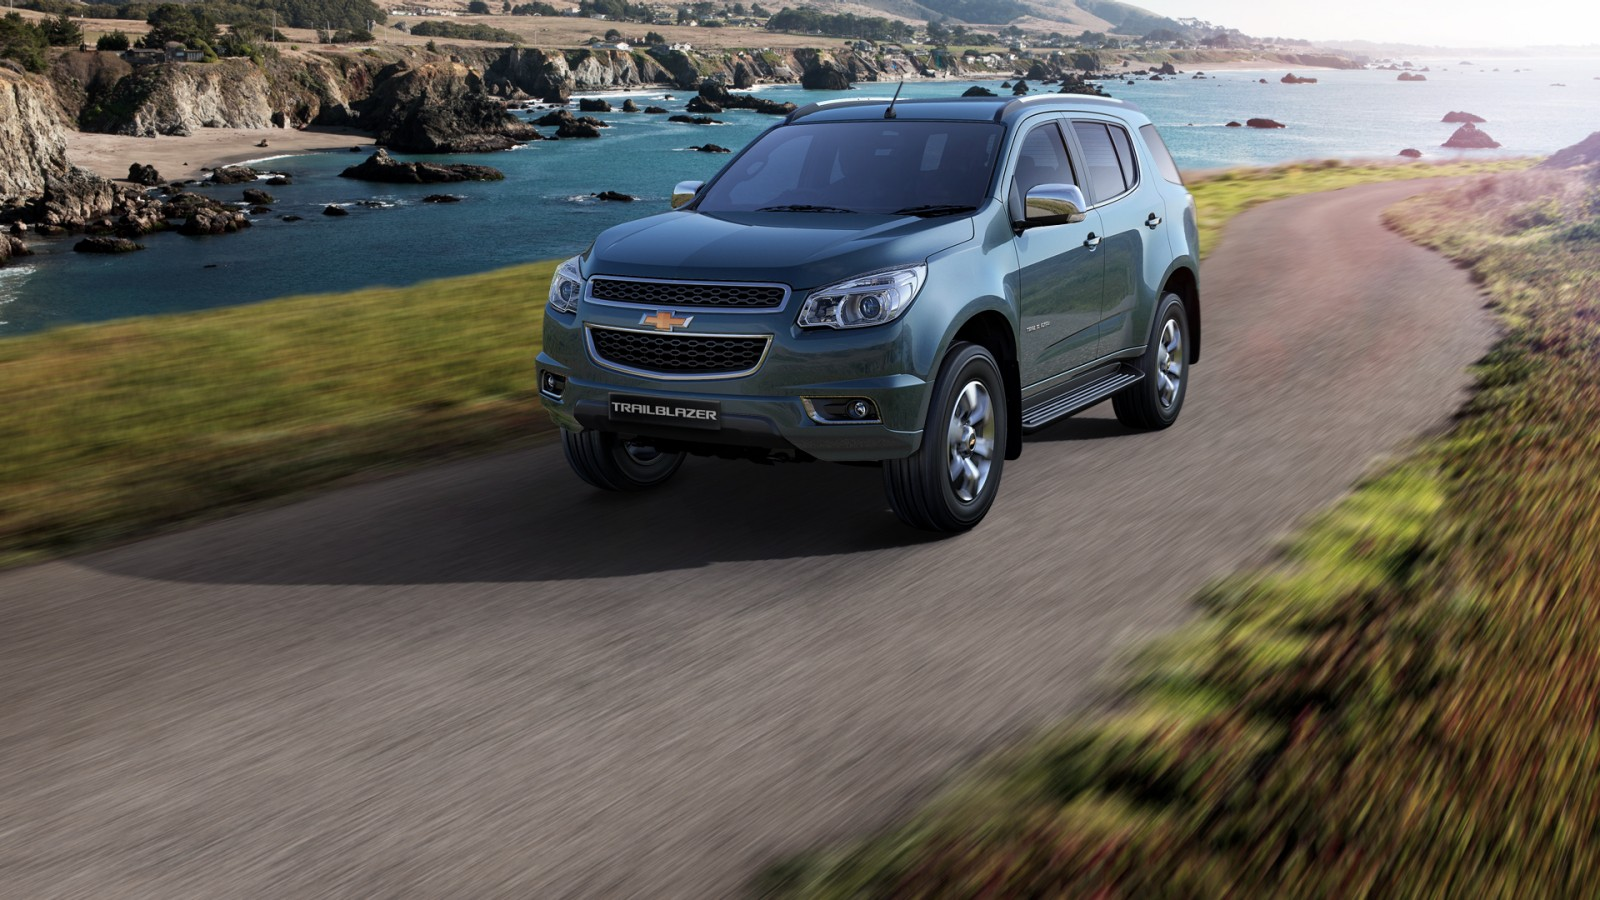 Chevrolet Trailblazer Exteriors Front View